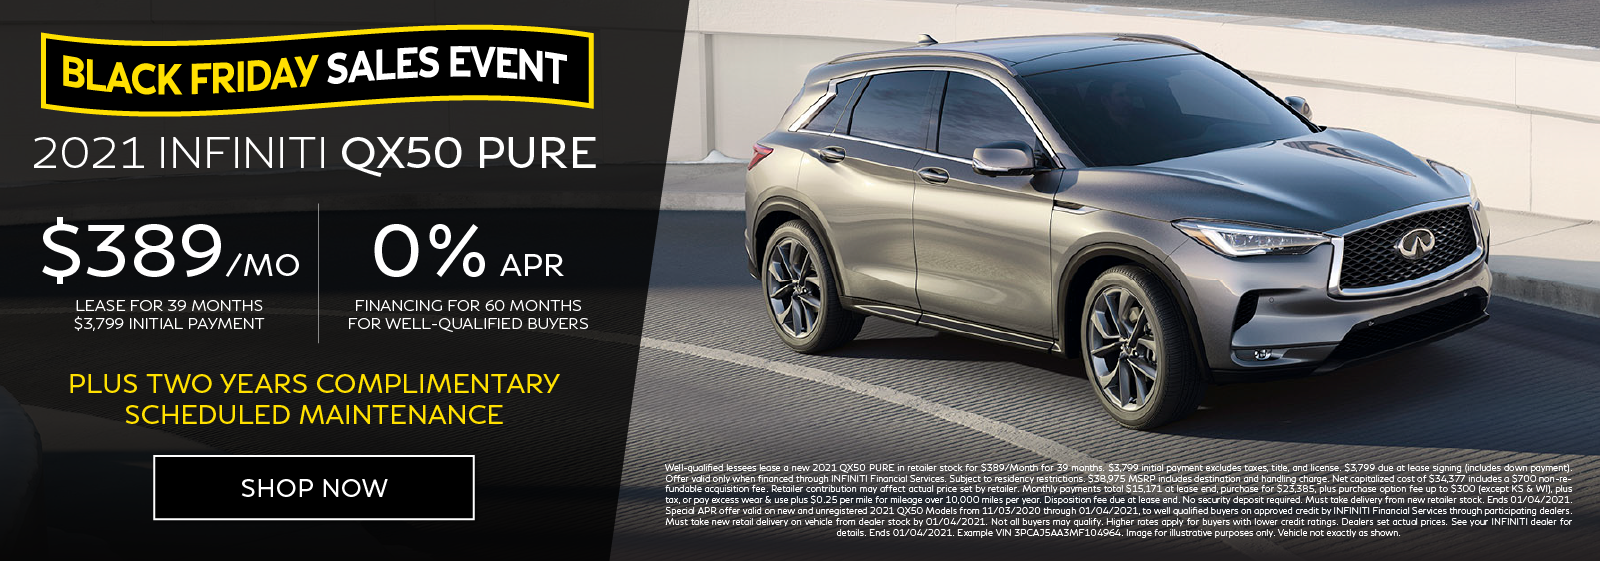 Well-qualified customers can lease a new 2021 QX50 PURE for $389 per month for 39 months OR get 0% APR financing for 60 months. Click to shop now.